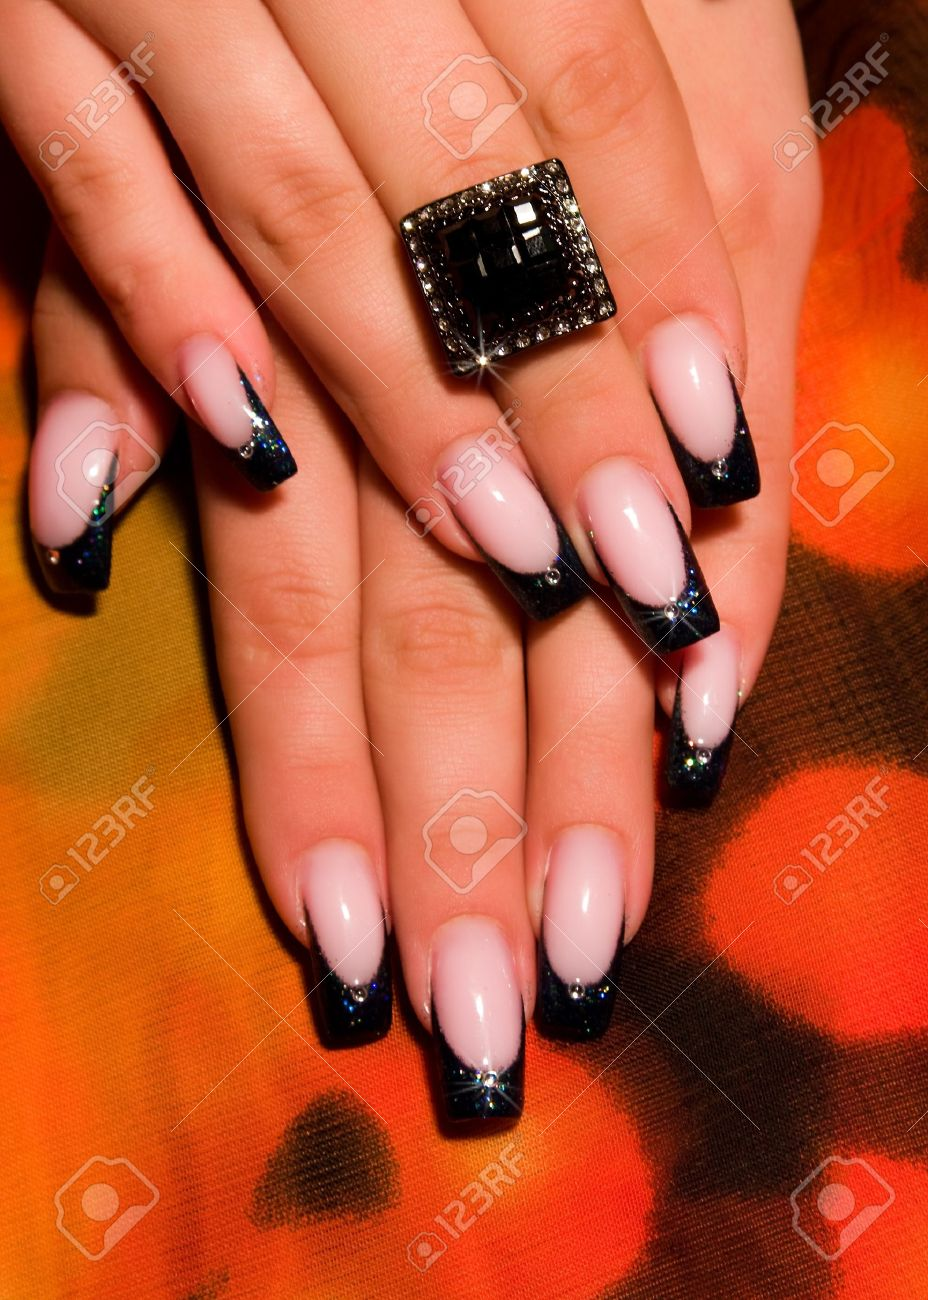 French manicure nails - 15541349